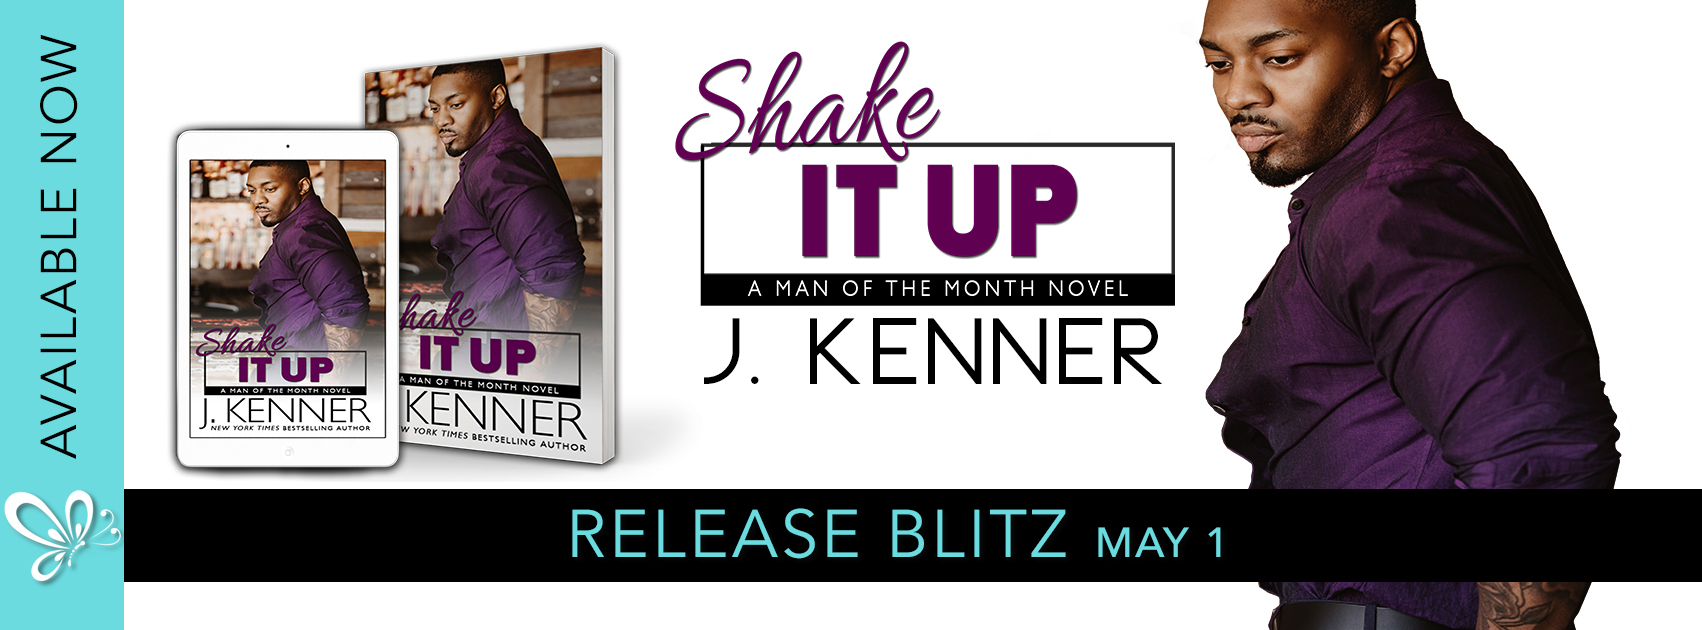 Release Blitz:  Shake It Up (Man of the Month Series #8) by J. Kenner